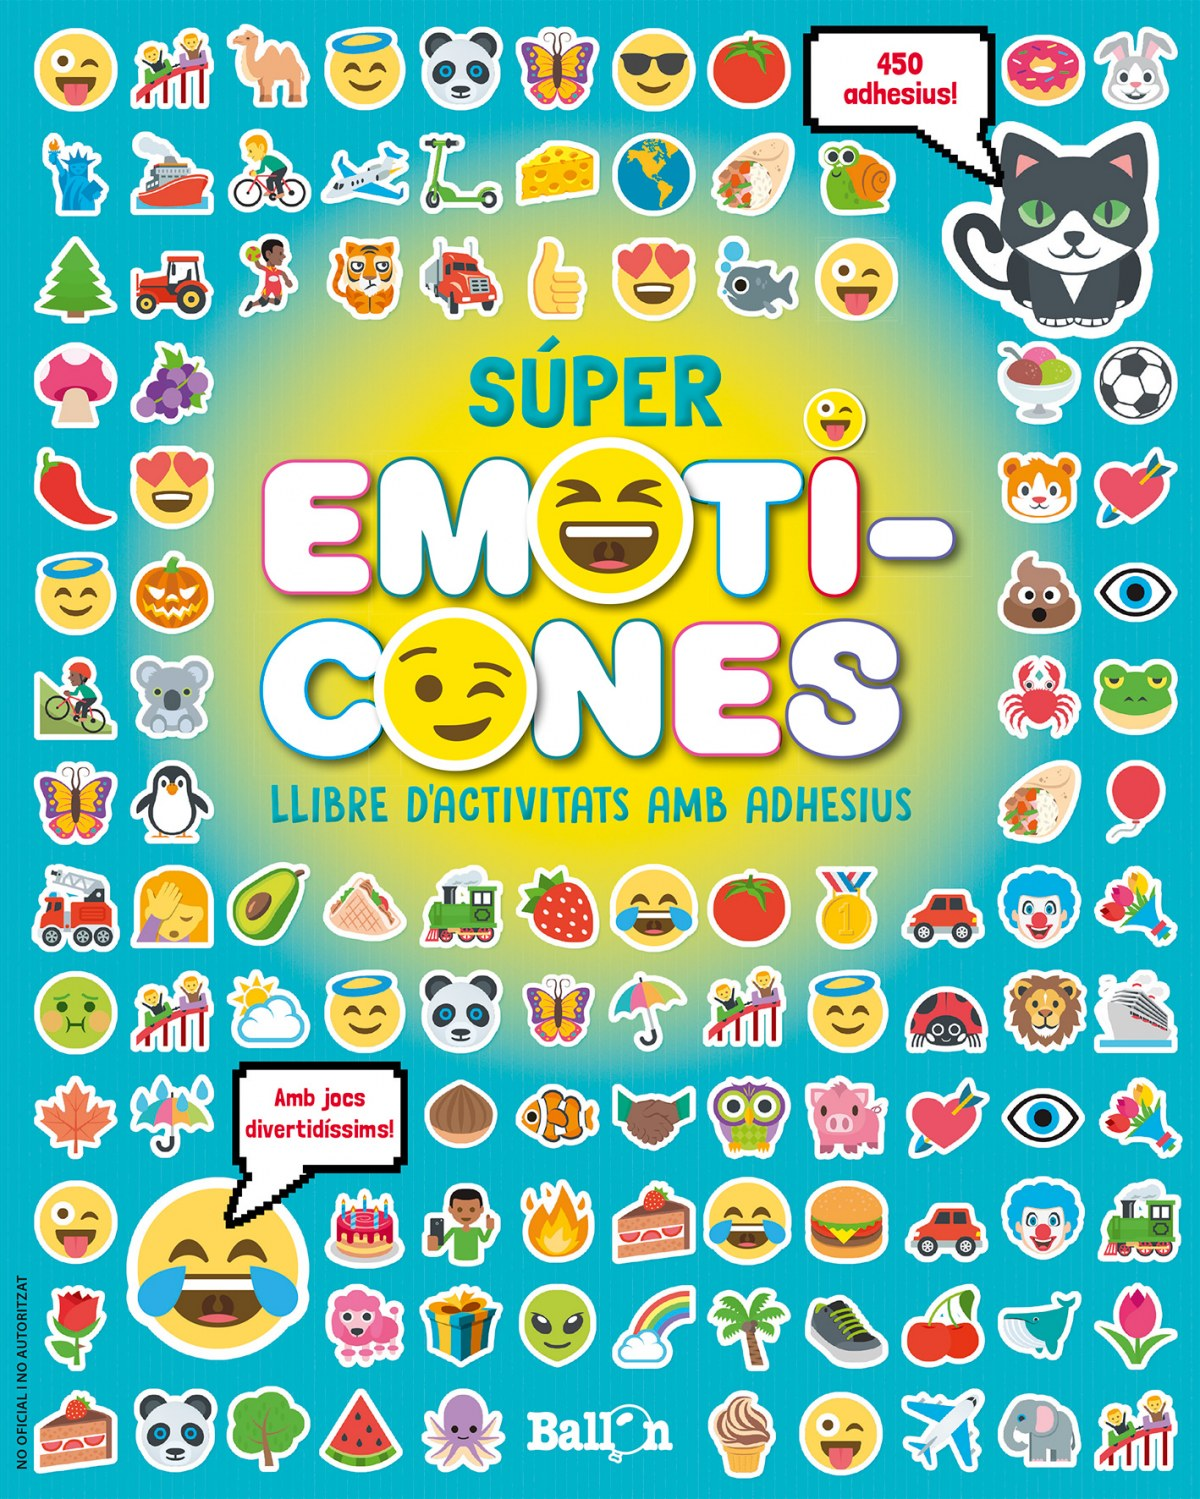 SÚPER EMOTICONES